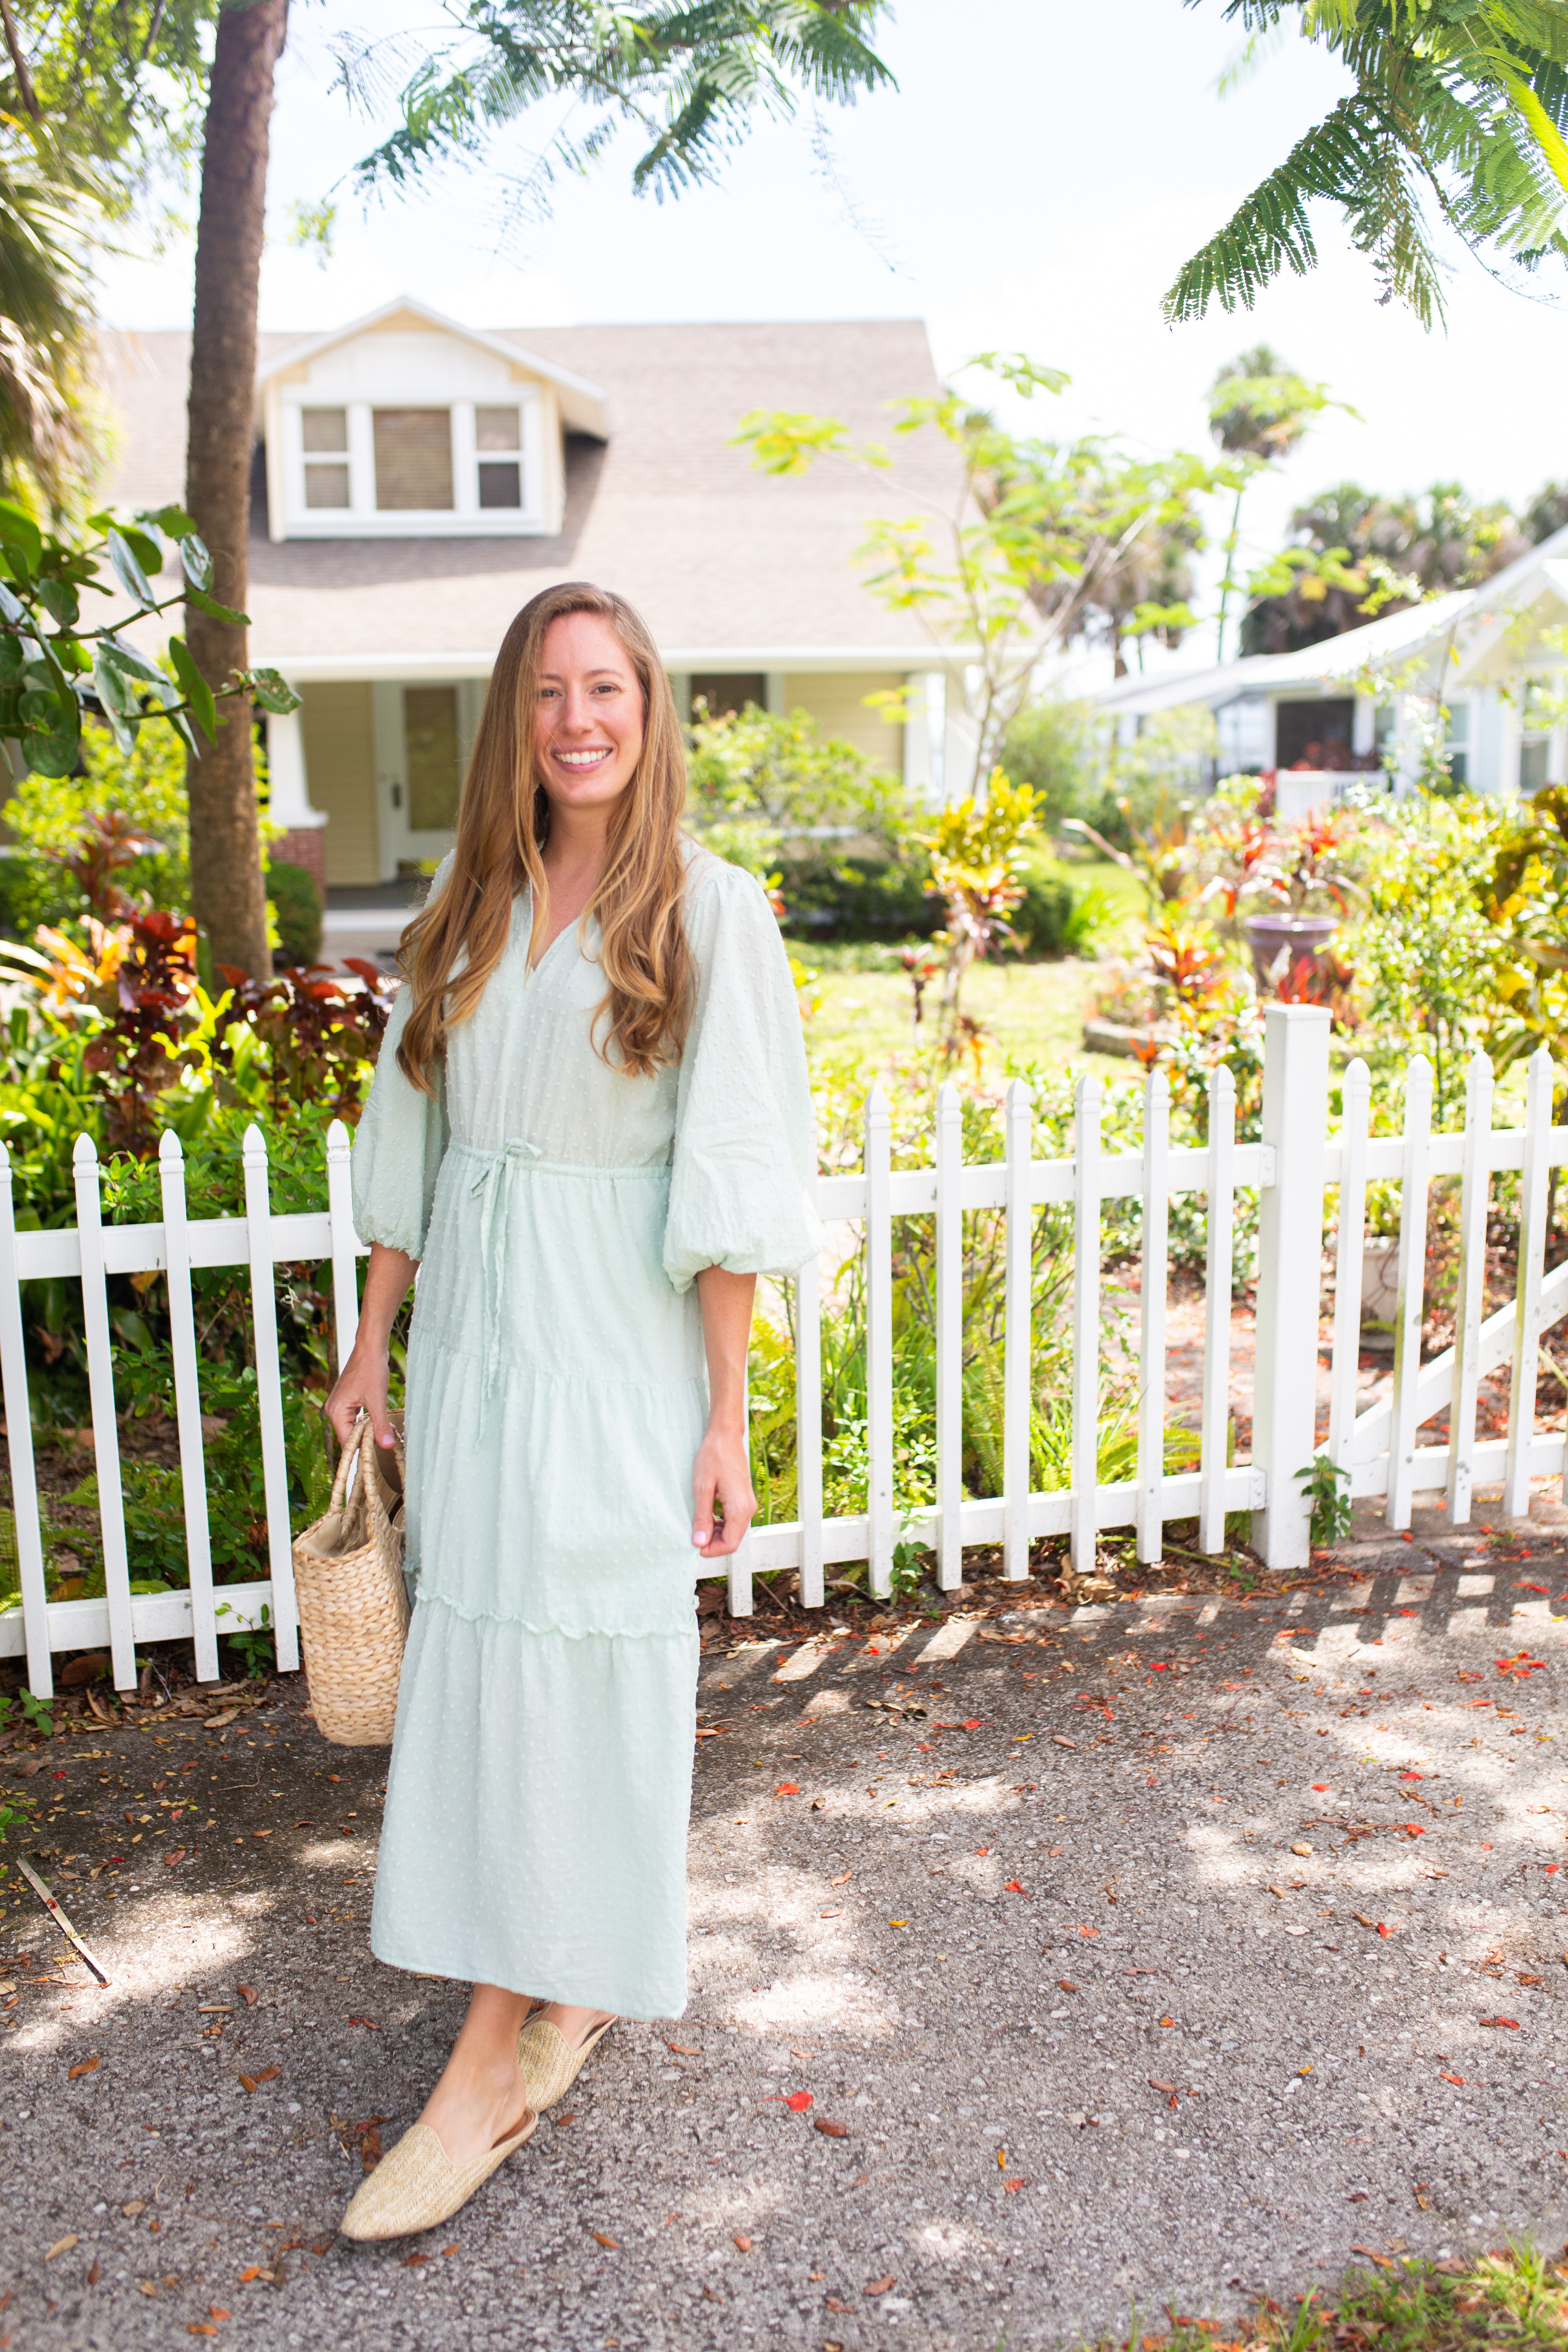 The Perfect Transition Dress from Spring to Summer / How to Style a Maxi Dress for Spring / Warm Weather Outfits / Casual Maxi Dress / Spring Outfit Inspiration / Summer Maxi Dress / Blouse Sleeves Dress - Sunshine Style, A Florida Based Style and Travel Blog